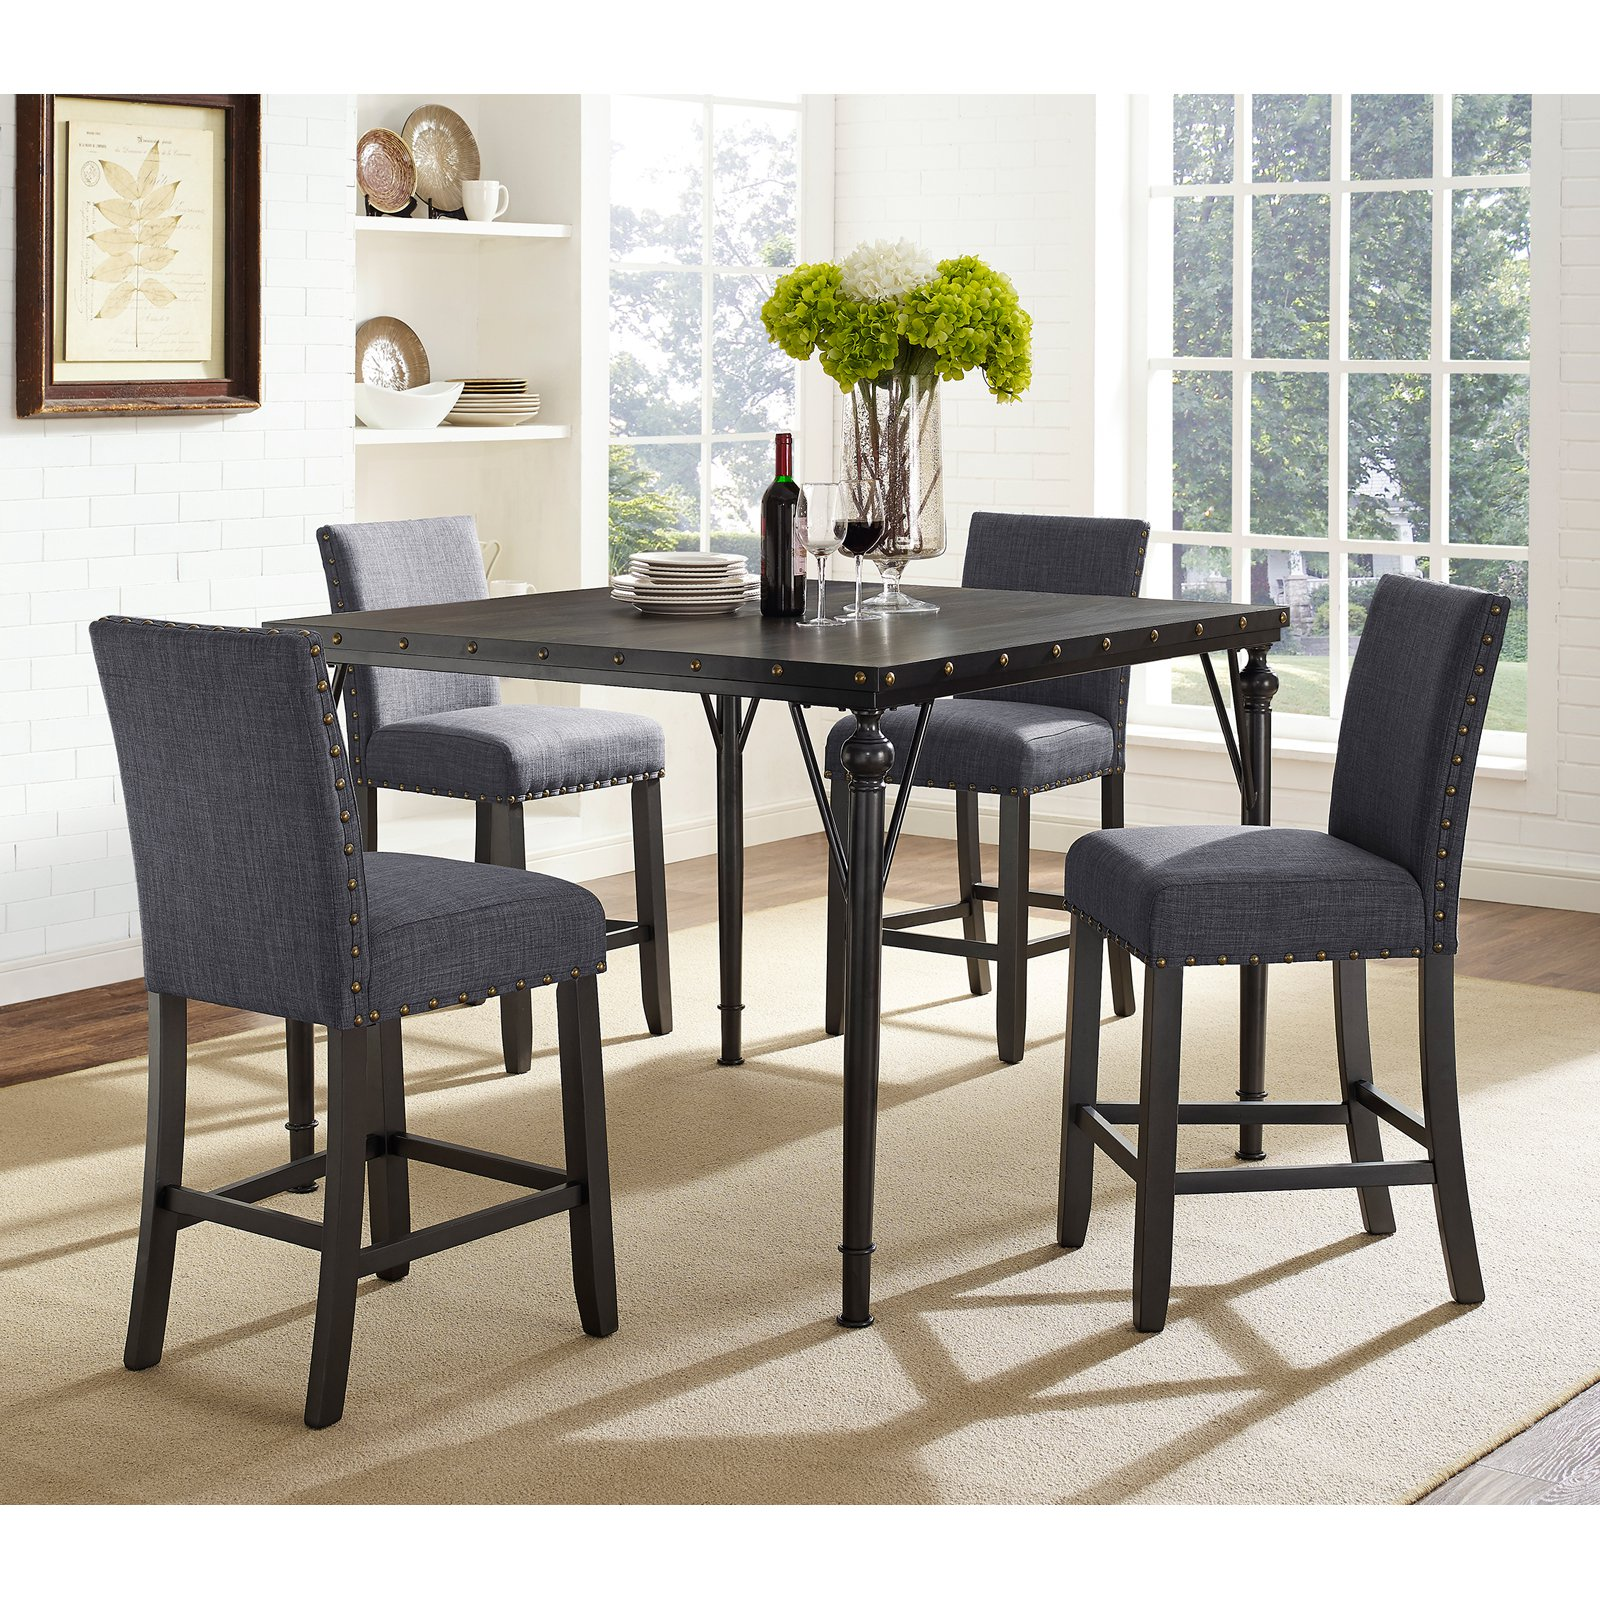 25+ Counter height dining table set canada Best Seller